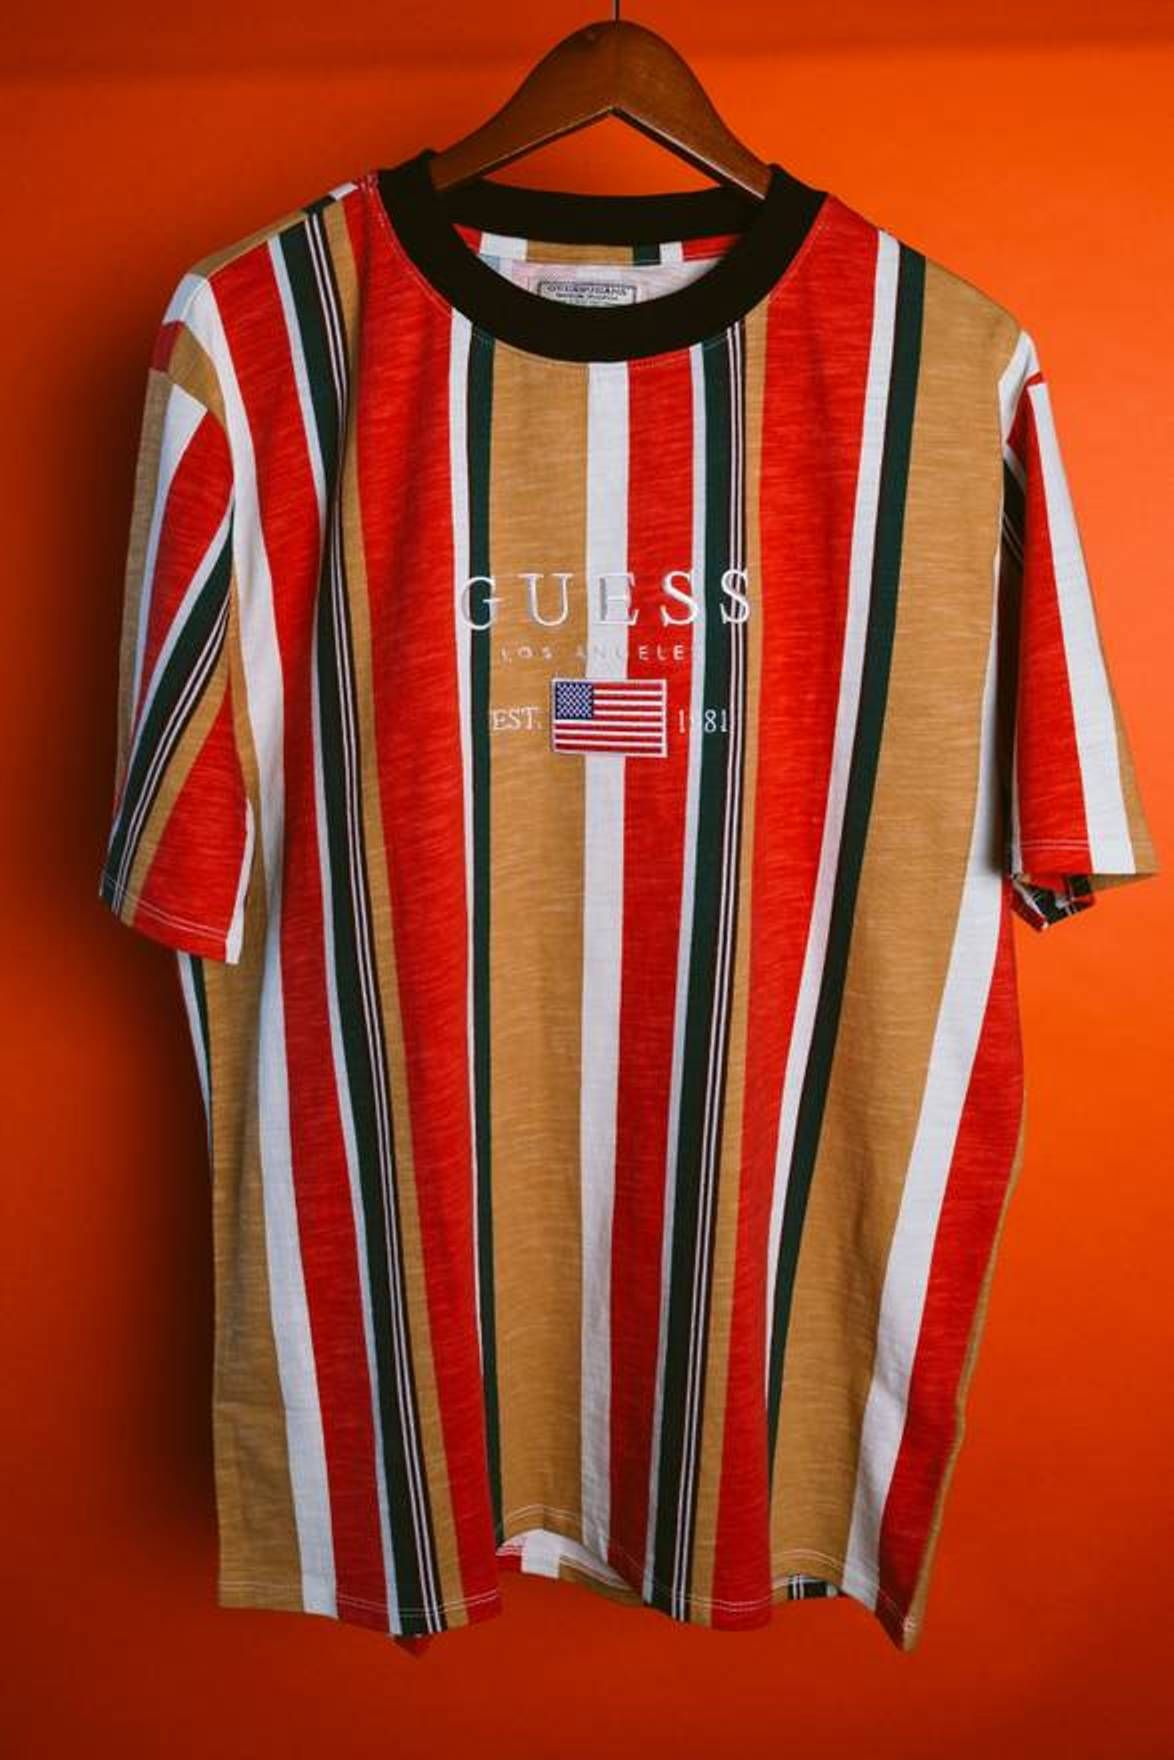 44d8bc72ee Guess Guess Jeans Los Angeles 1981 USA Guess Striped Shirt Capsule Vertical  Vtg Asap Rocky Size US M / EU 48-50 / 2